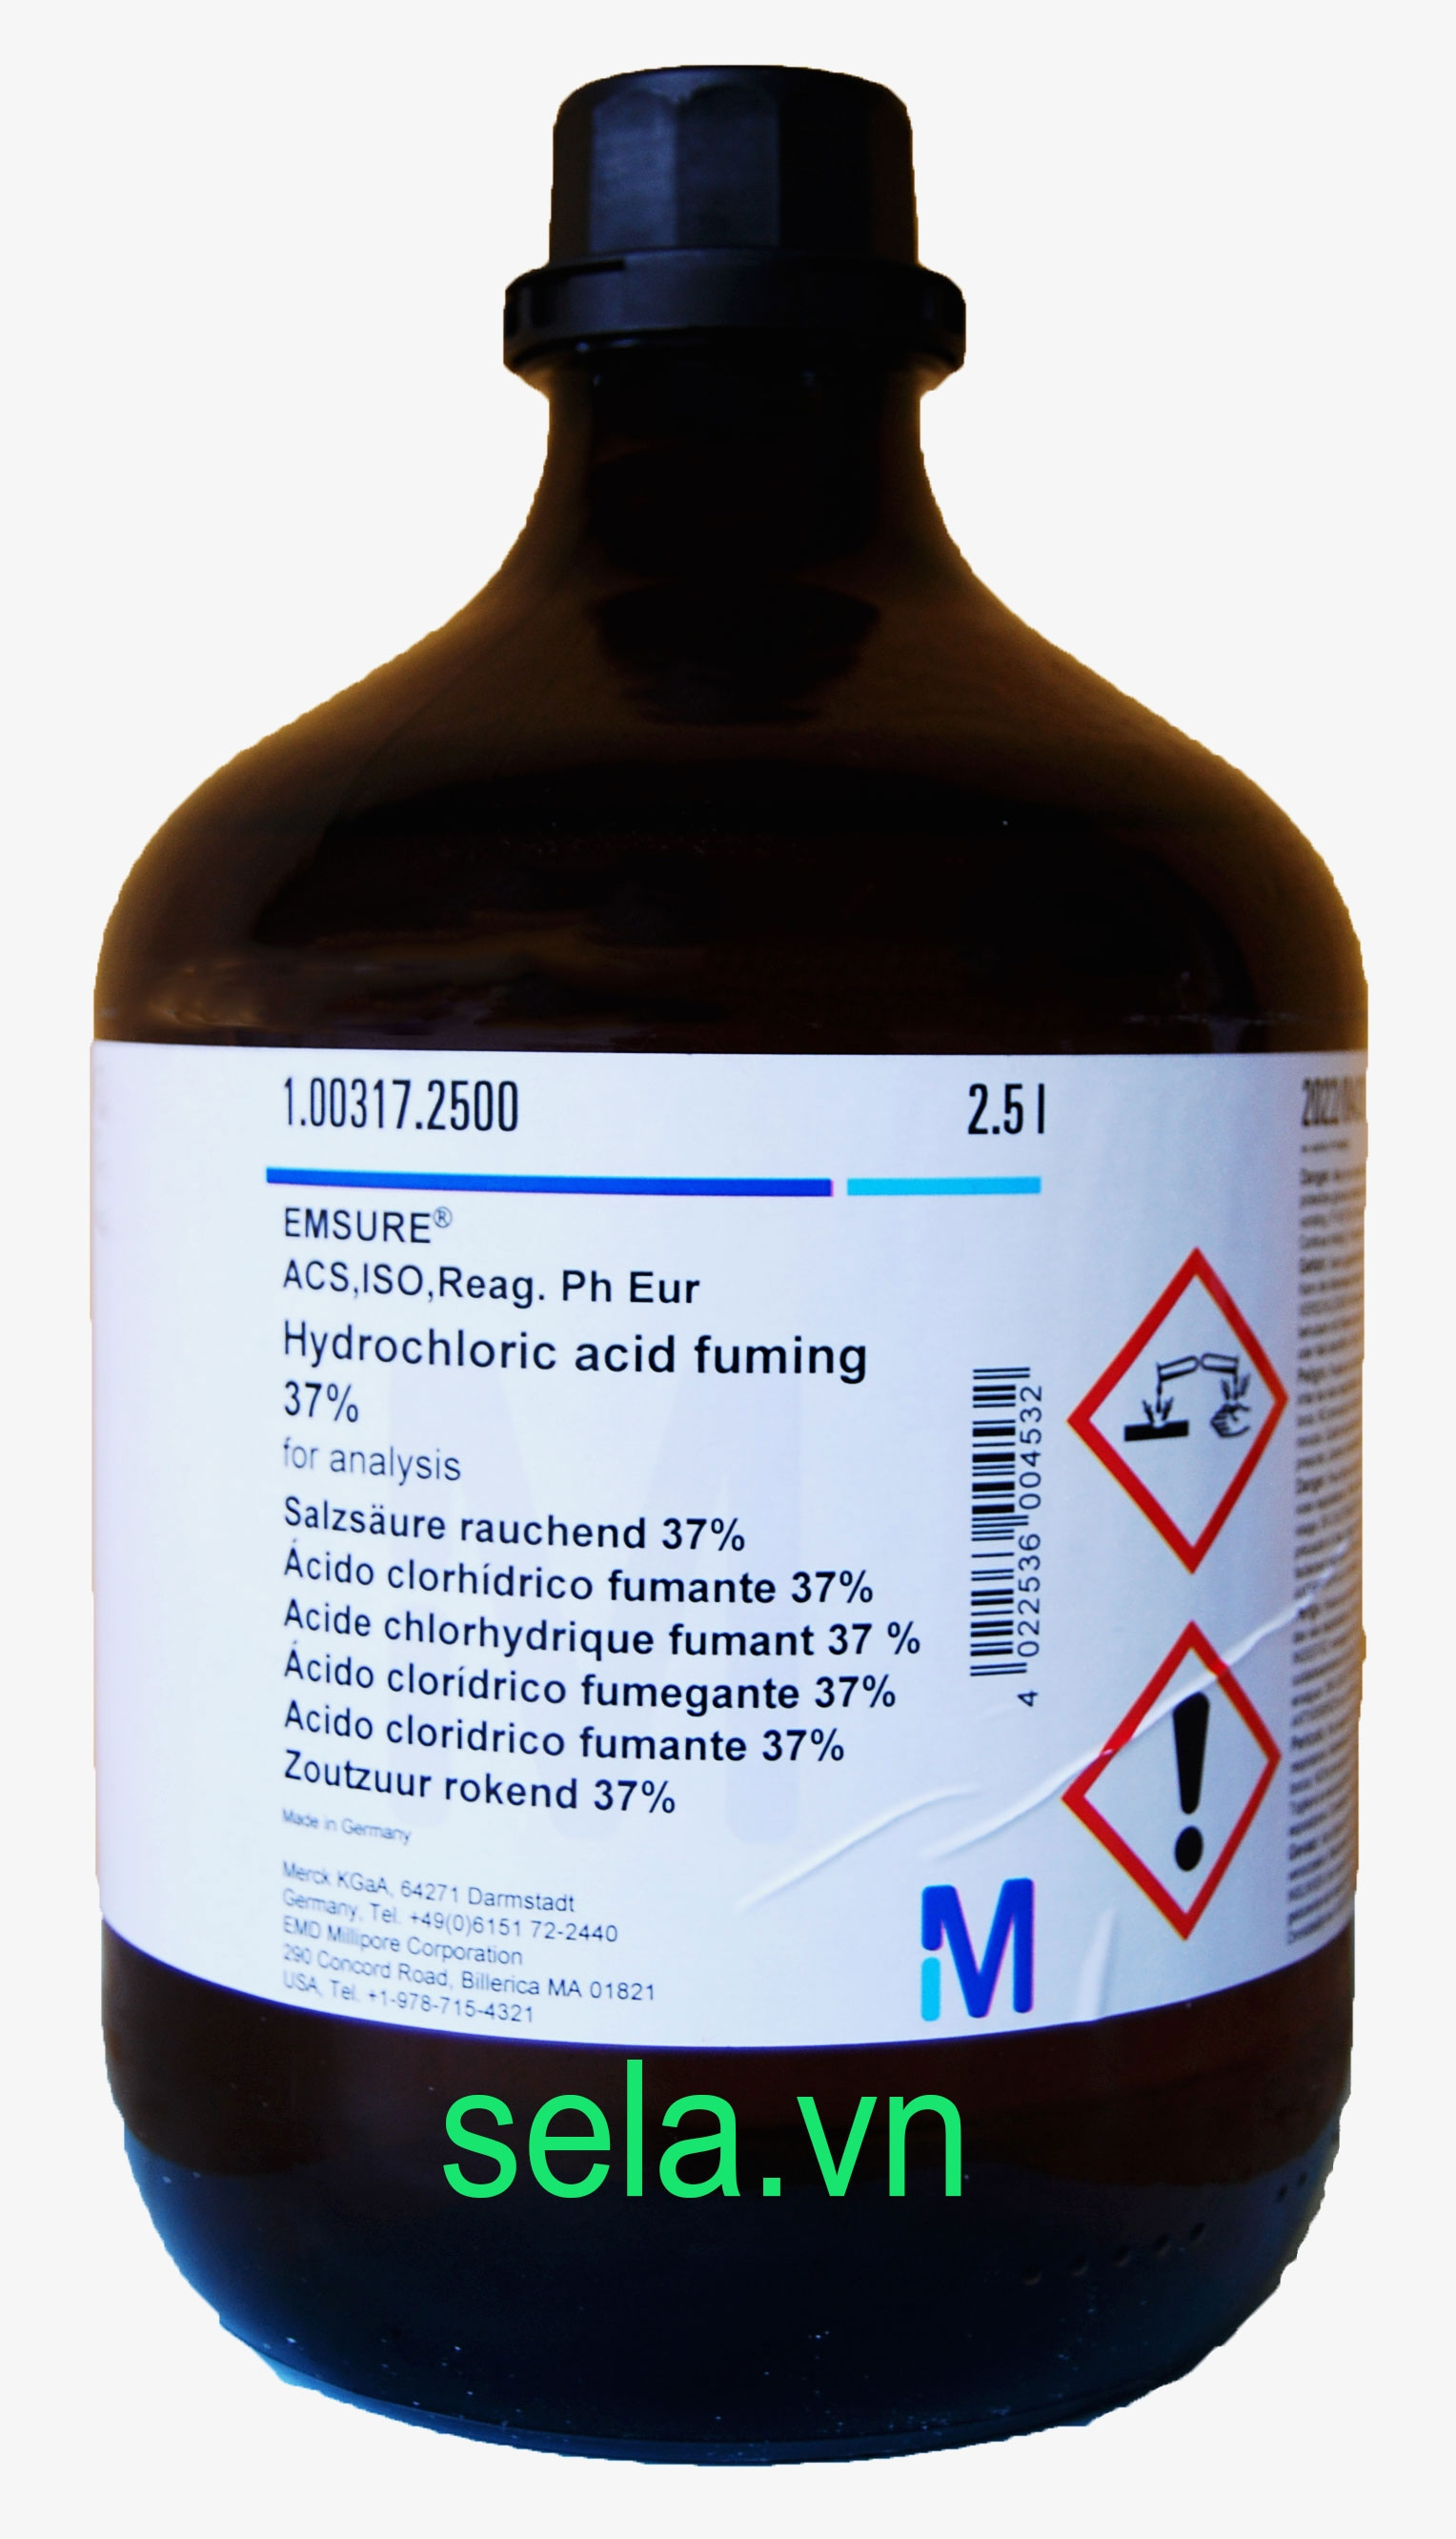 Hydrochloric acid fuming 37% for analysis EMSURE® ACS,ISO,Reag. Ph Eur